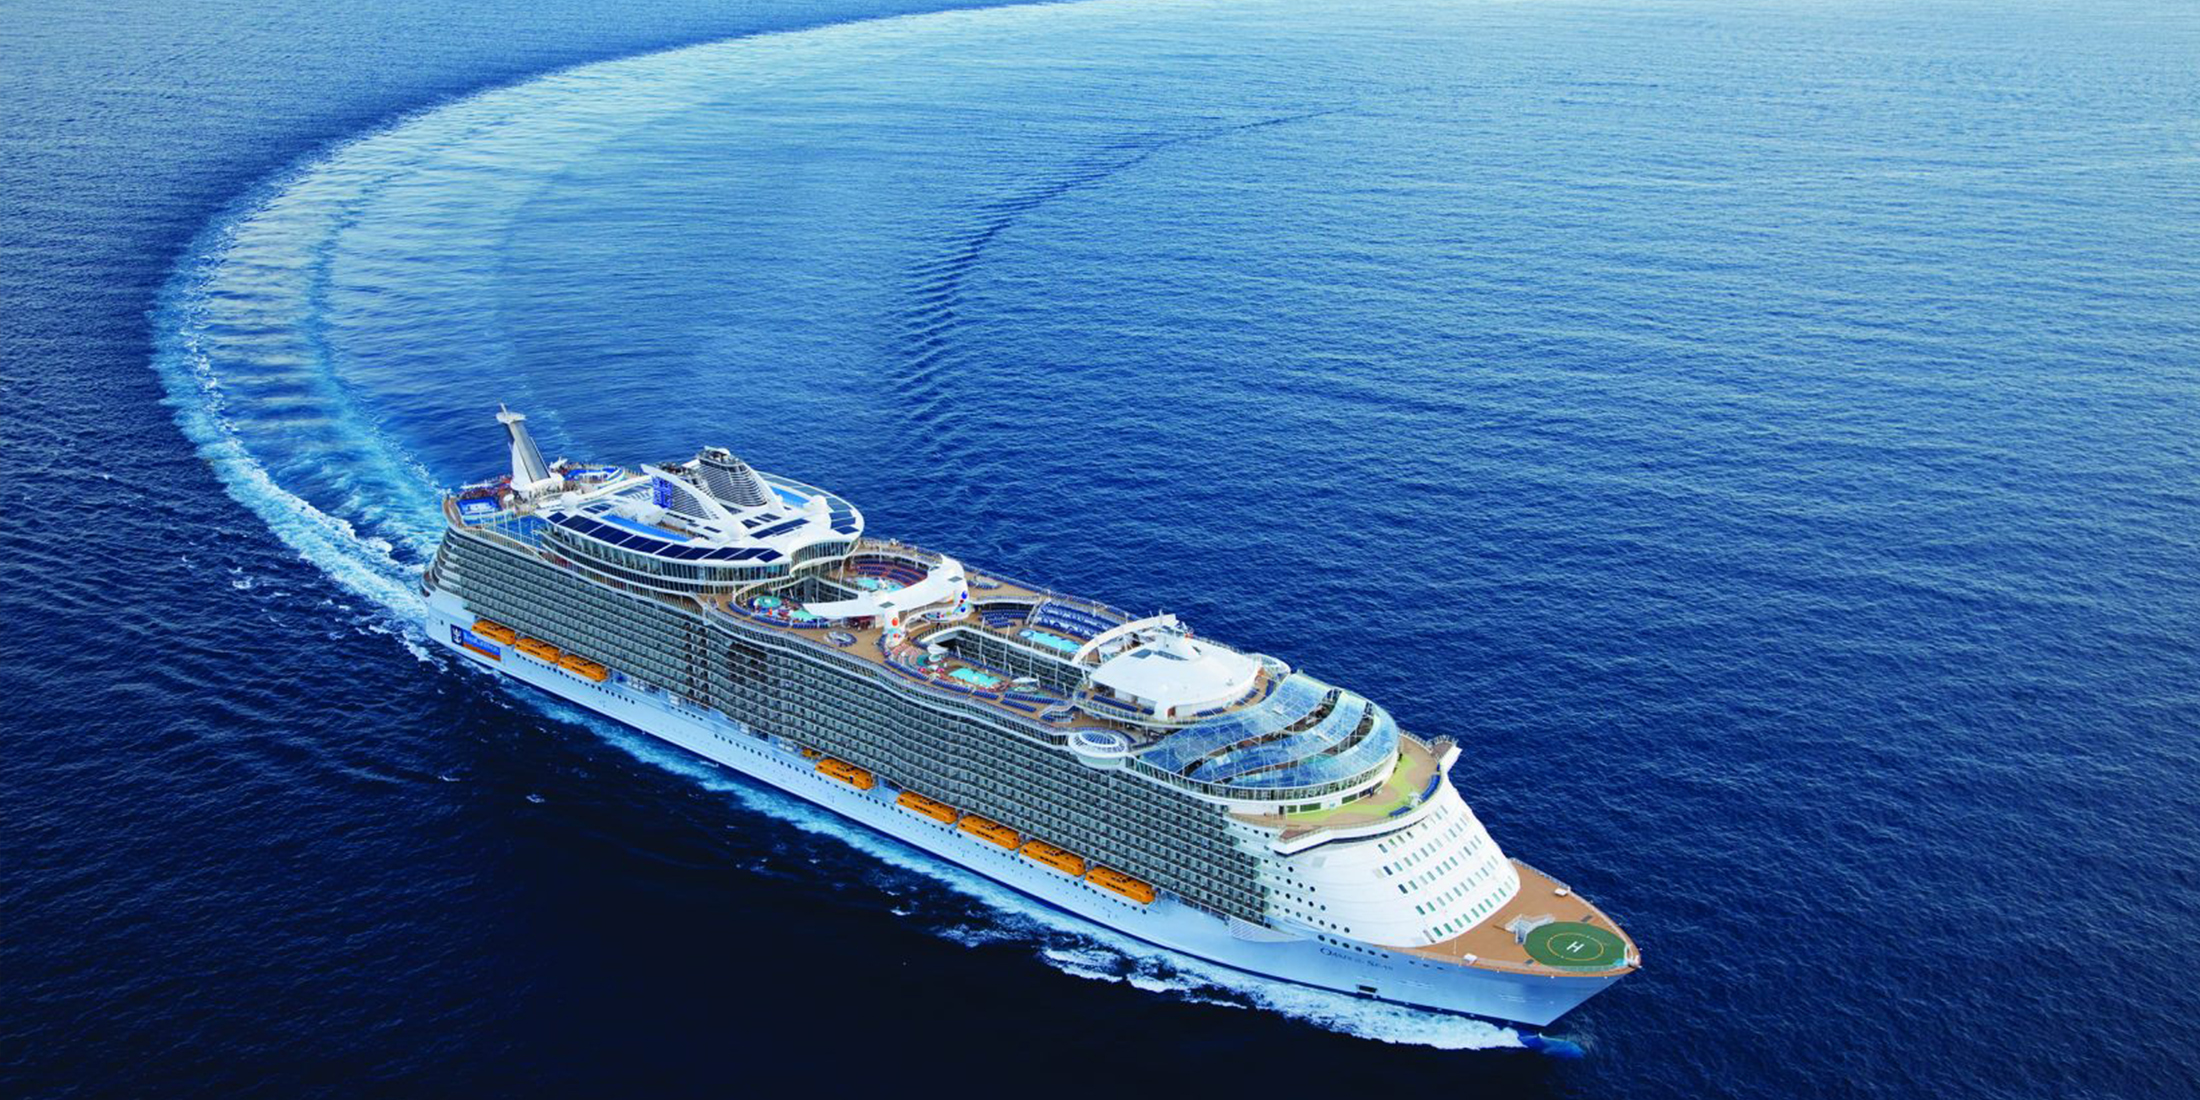 What A Day At Sea Looks Like With Royal Caribbean!